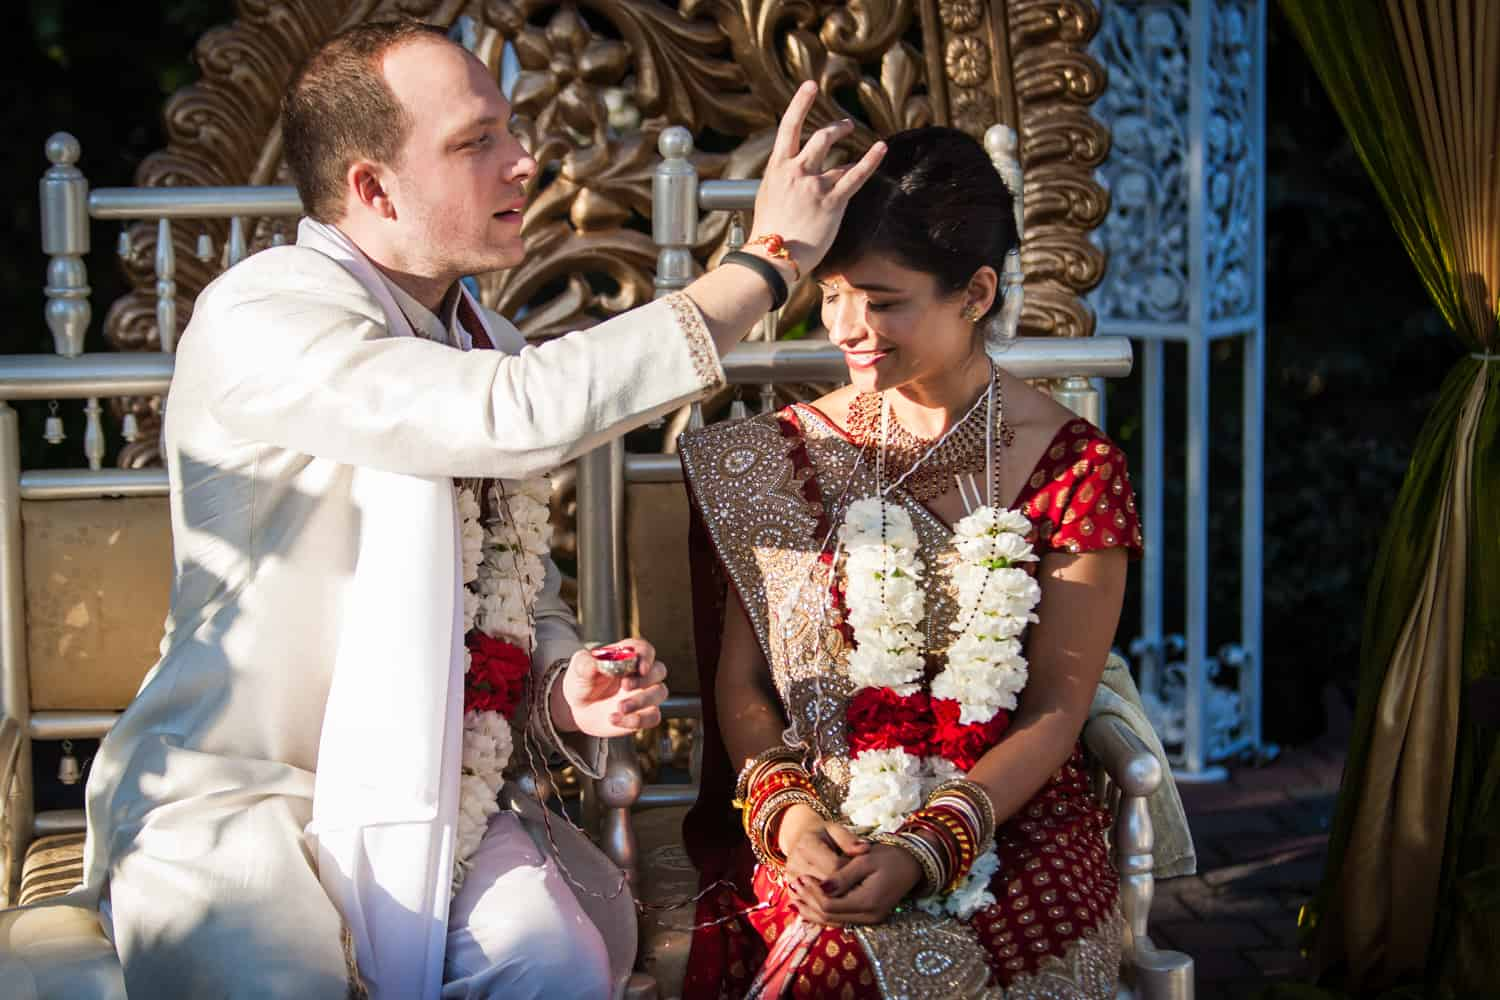 Groom putting bindhi on bride during traditional Hindu wedding ceremony